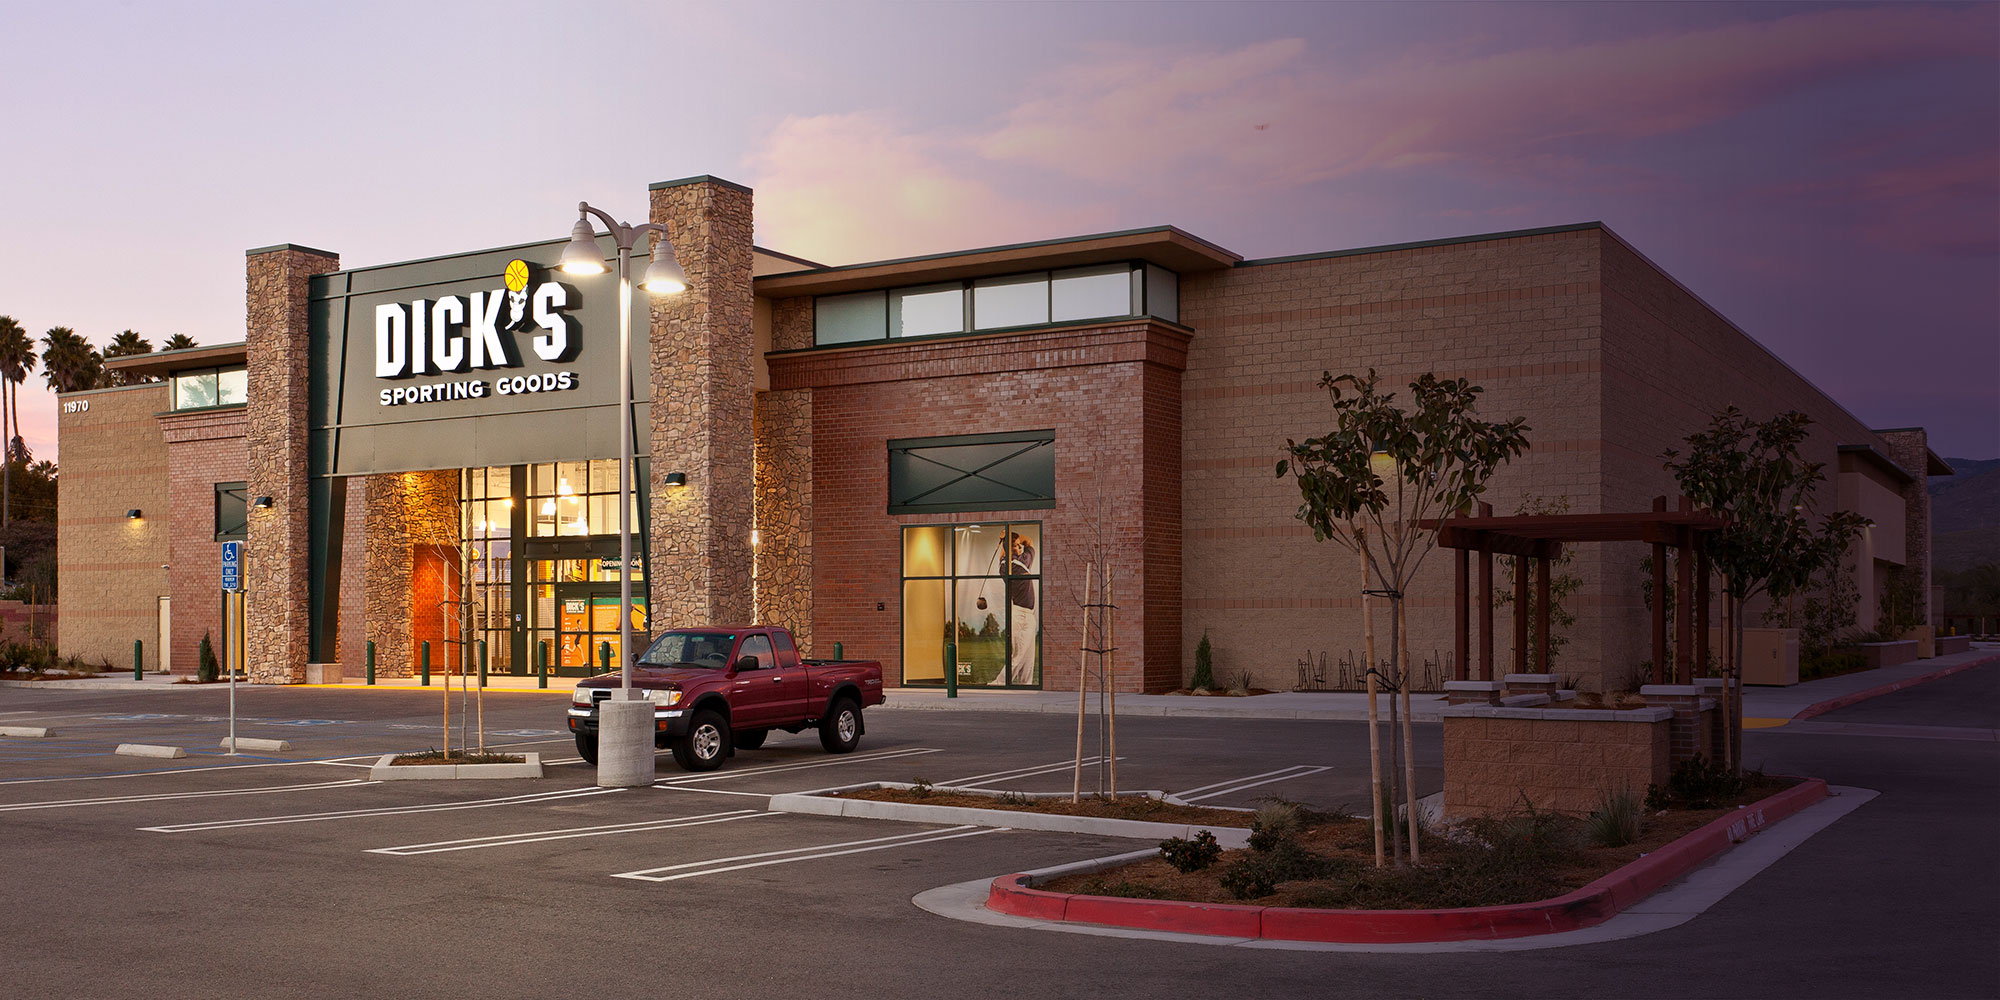 Dick's Sporting Goods Construction - Retail Building Contractor - JW Design and Construction